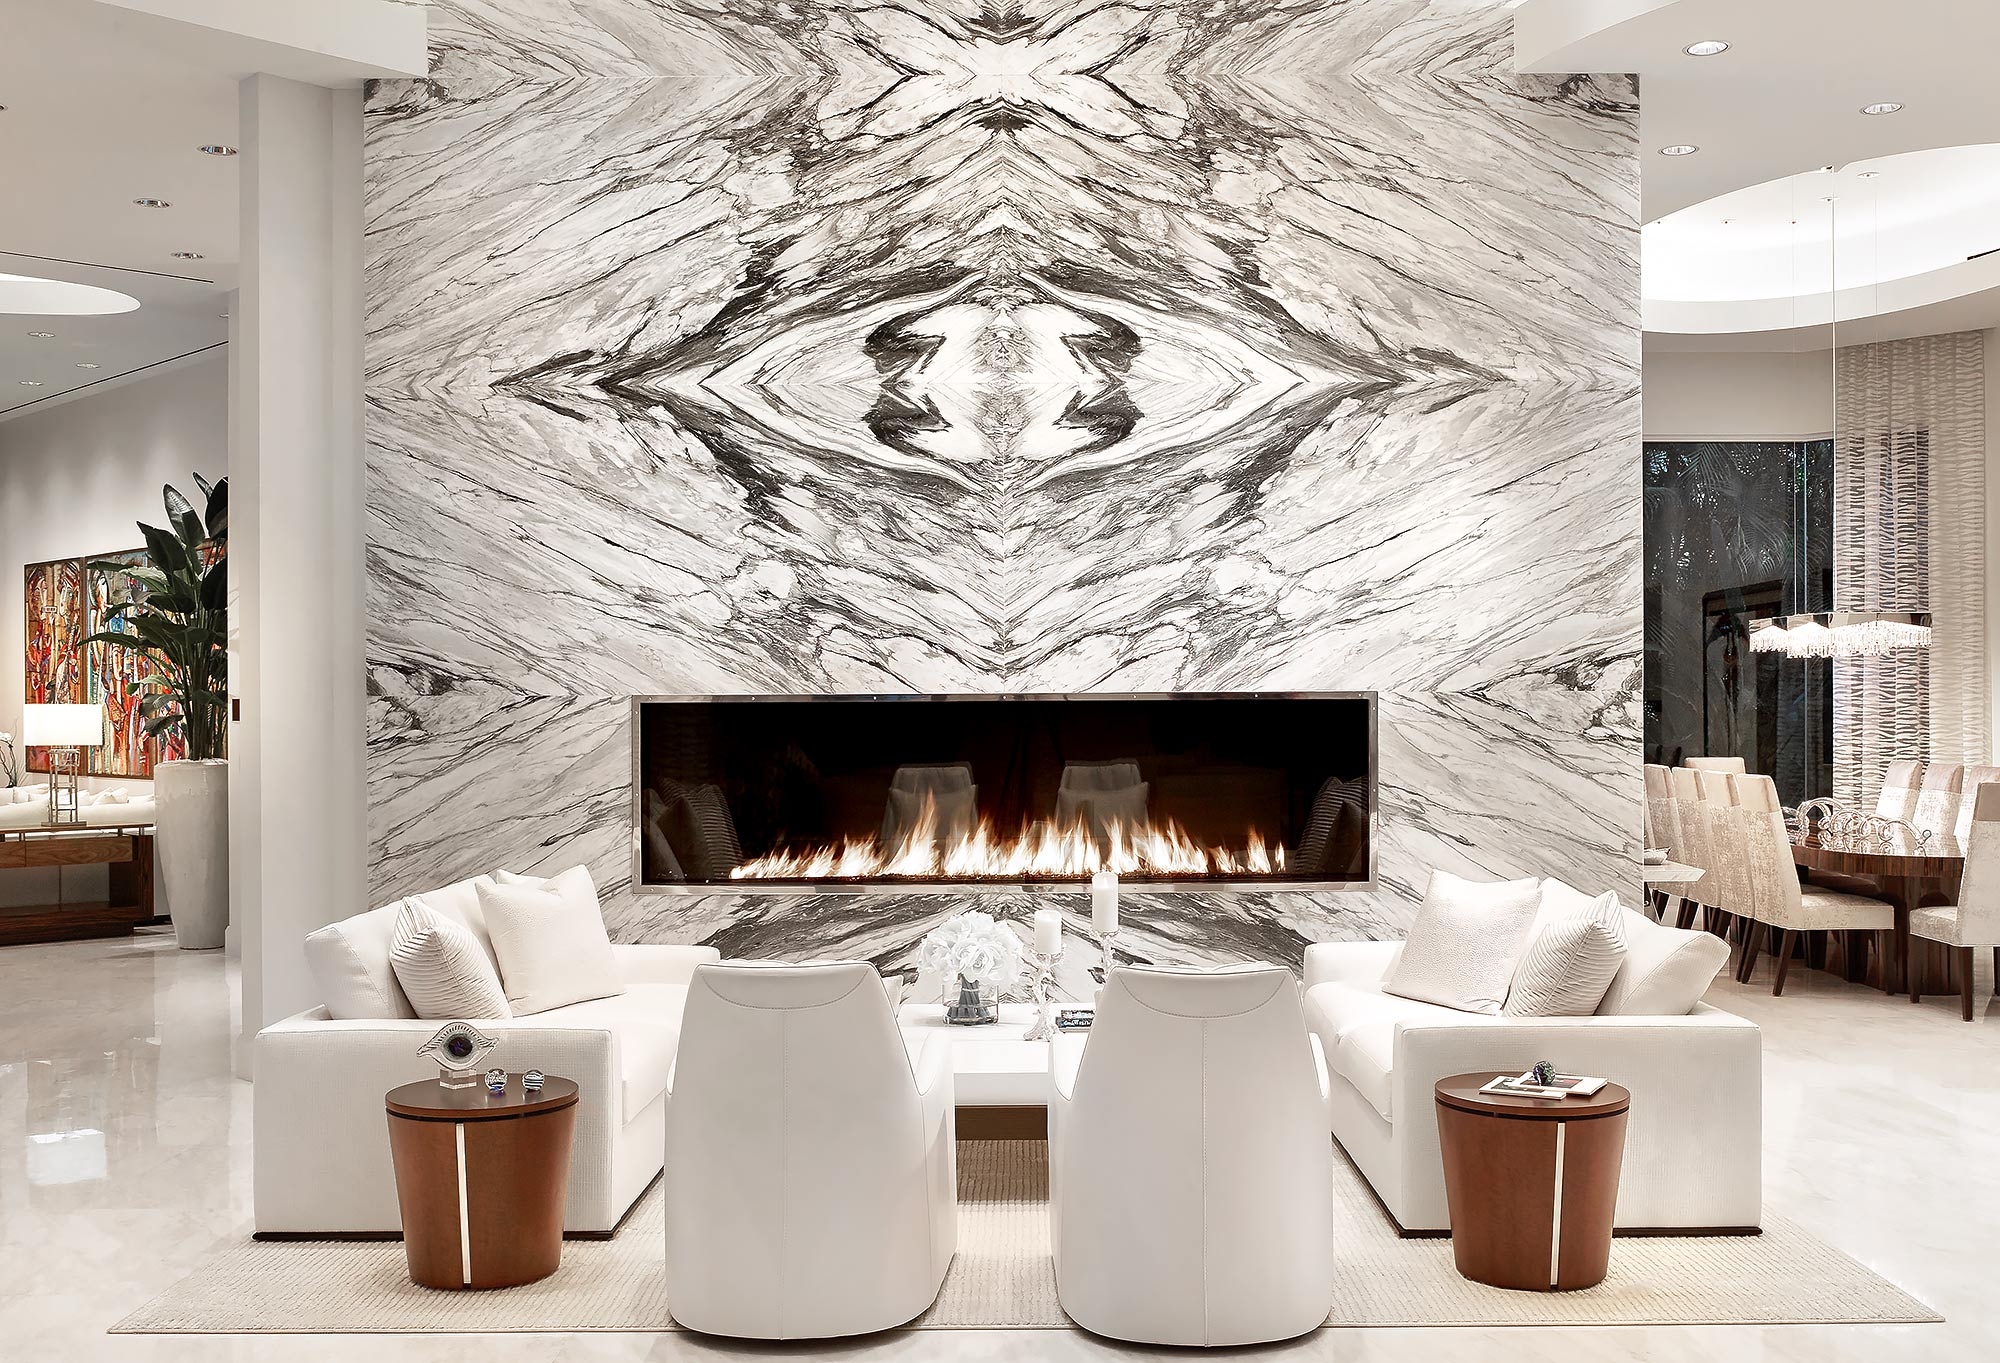 Marble-Fireplace-Interiors-by-Steven-G-Fort-Lauderdale